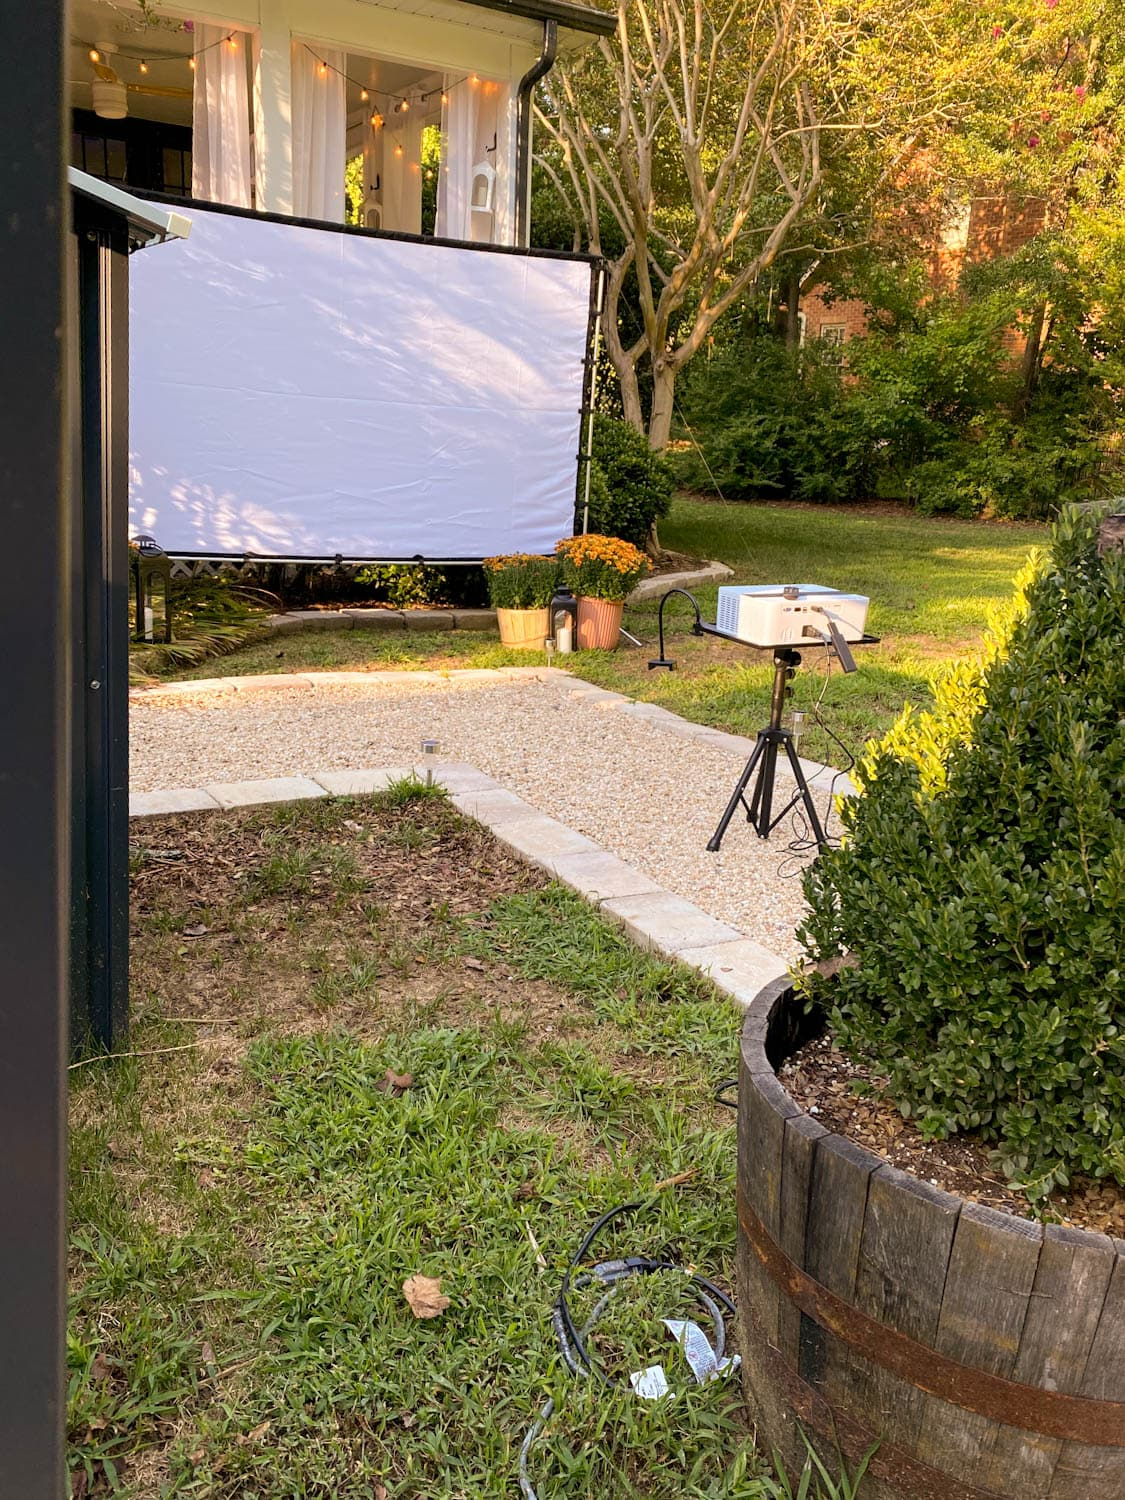 how to set up a backyard movie night with recommended projector and outdoor projector screen